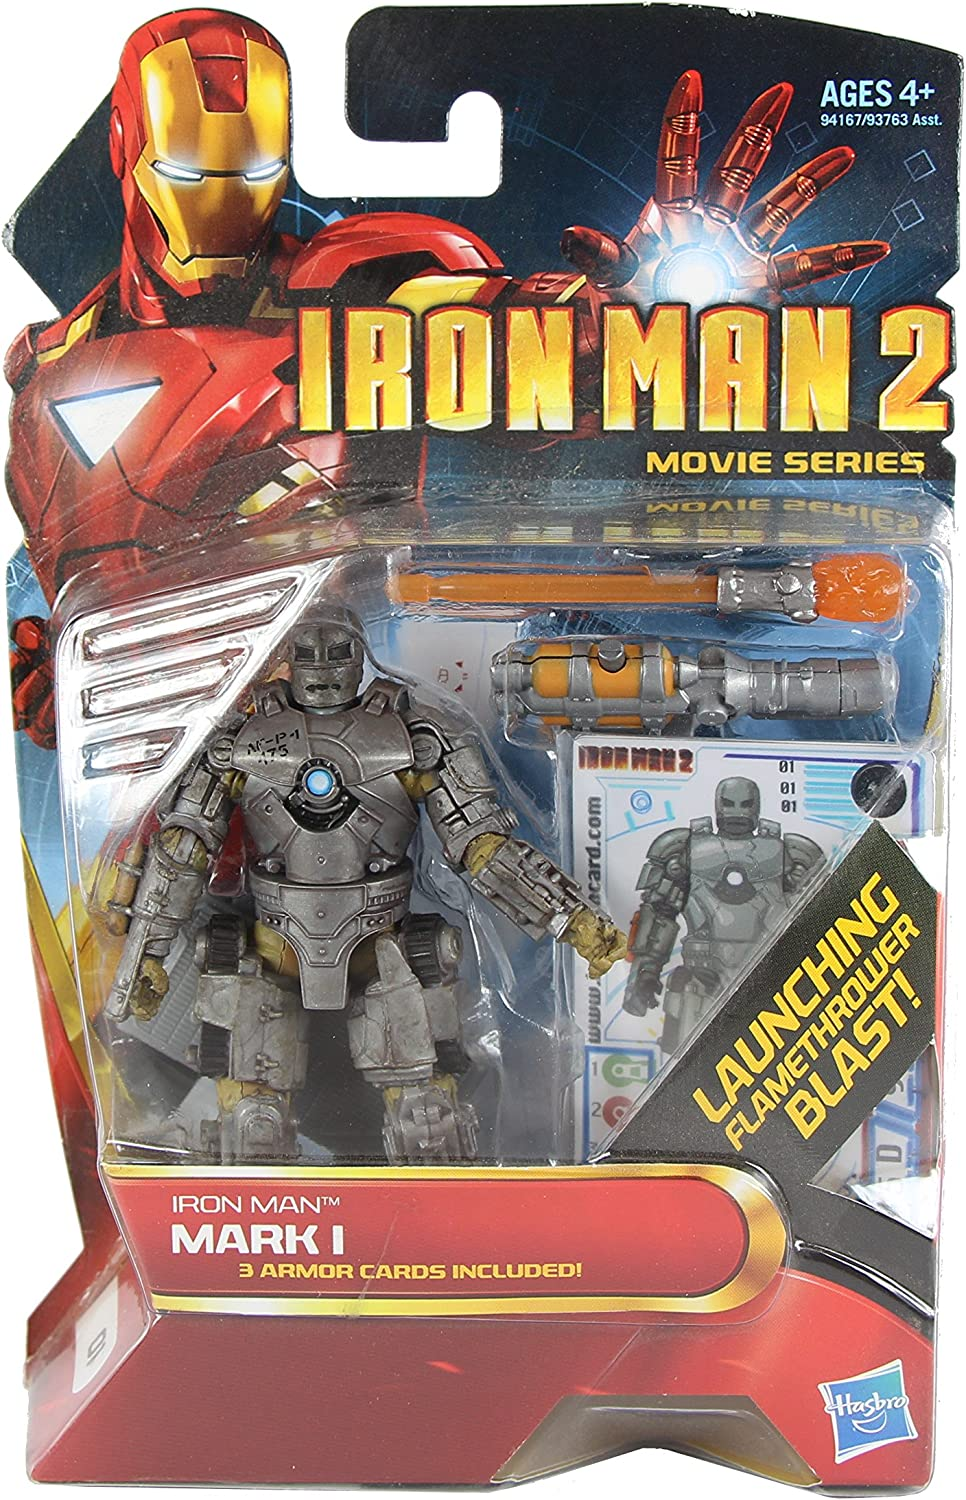 Iron Man 2 Movie Figure Iron Man Mark I